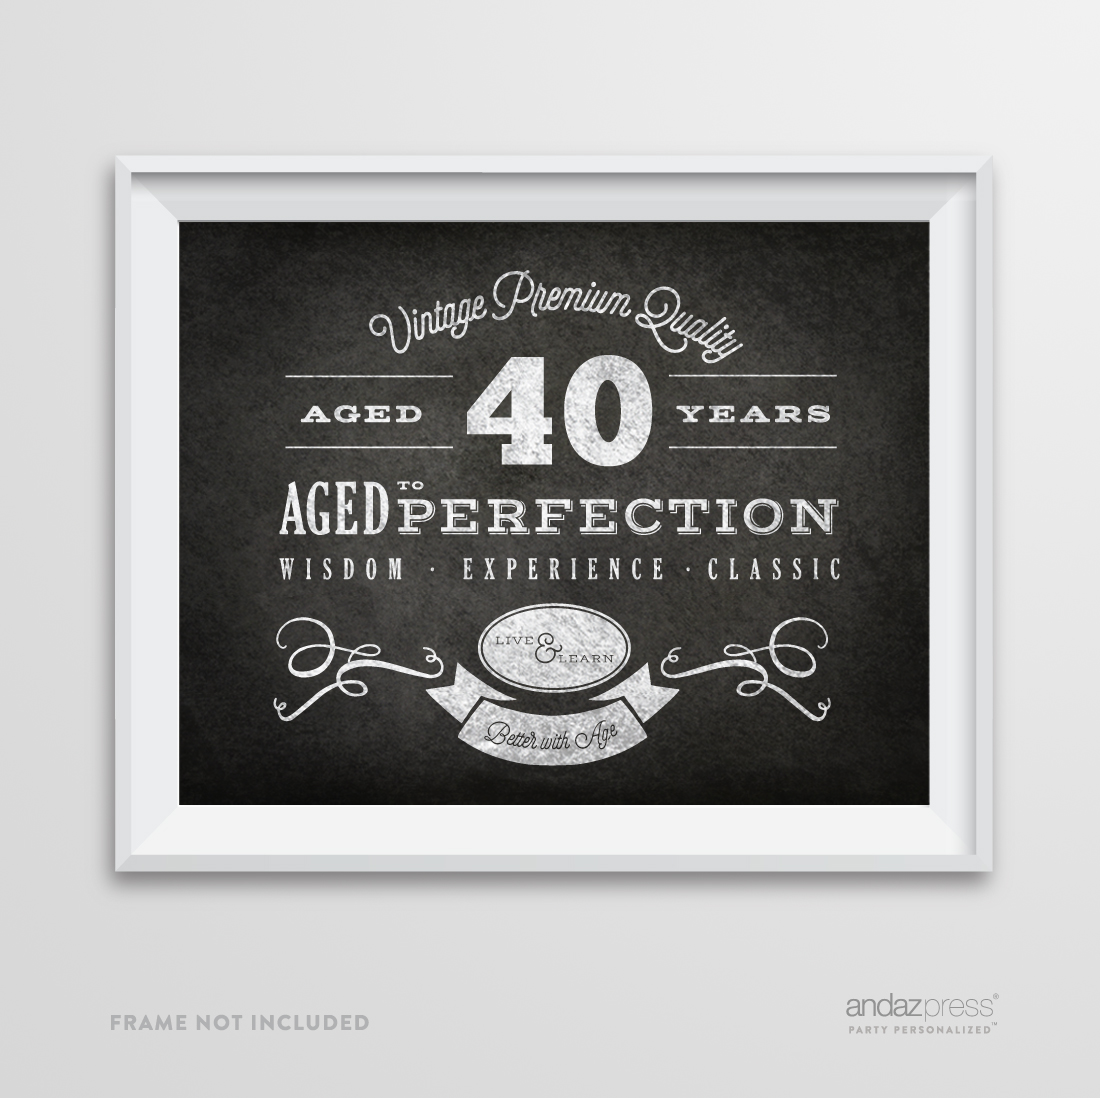 AP10321 Andaz Press Biblical Wedding Signs Formal Black And Whi